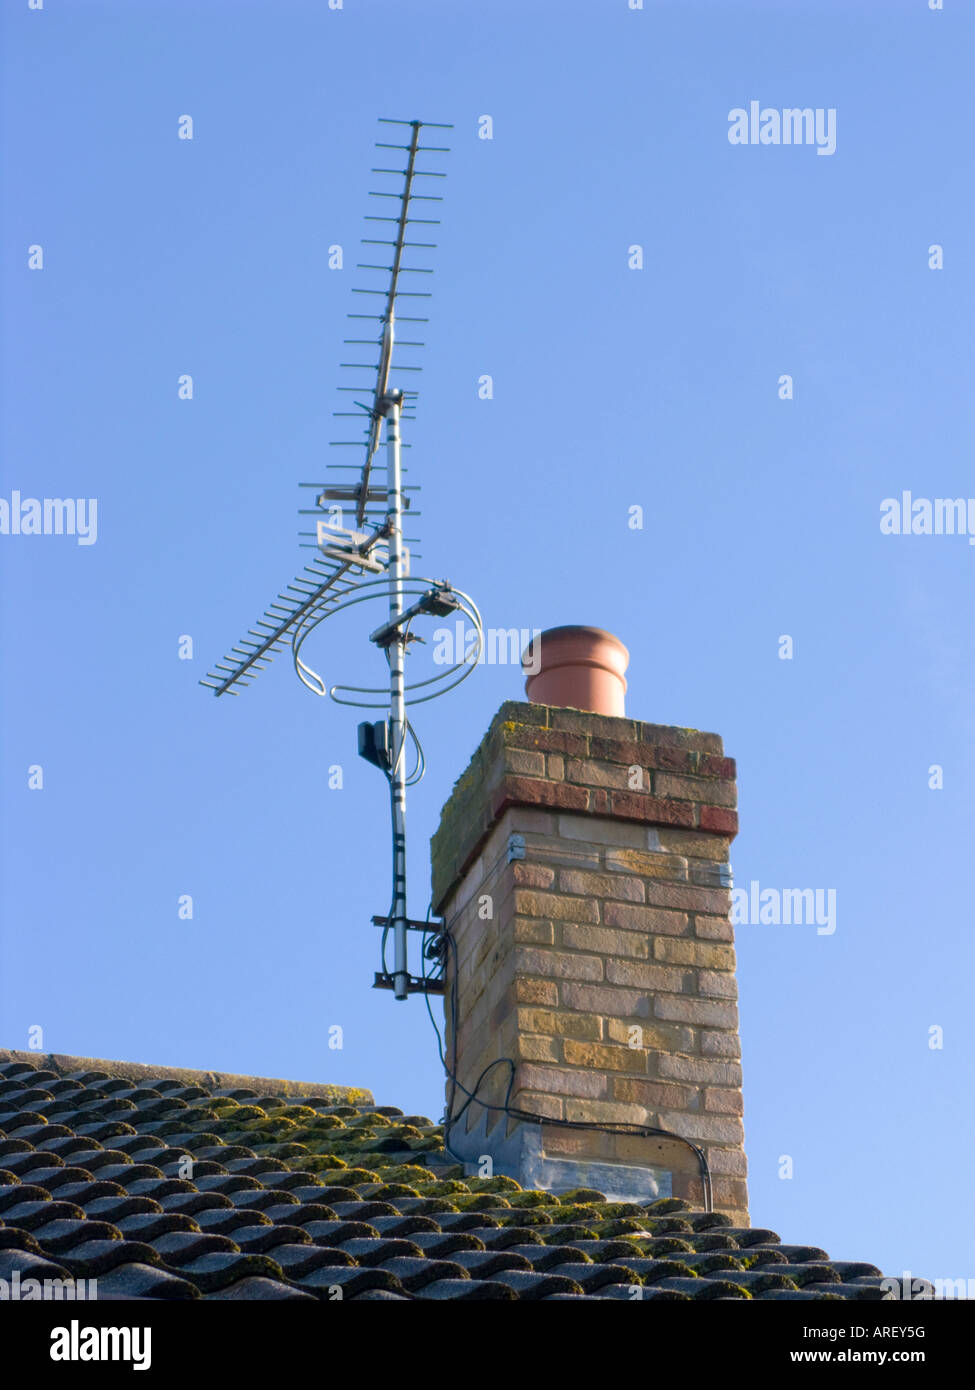 colour image looking up to a roof and  chimley which has a tv aerial attached to it, clear blue sky Stock Photo